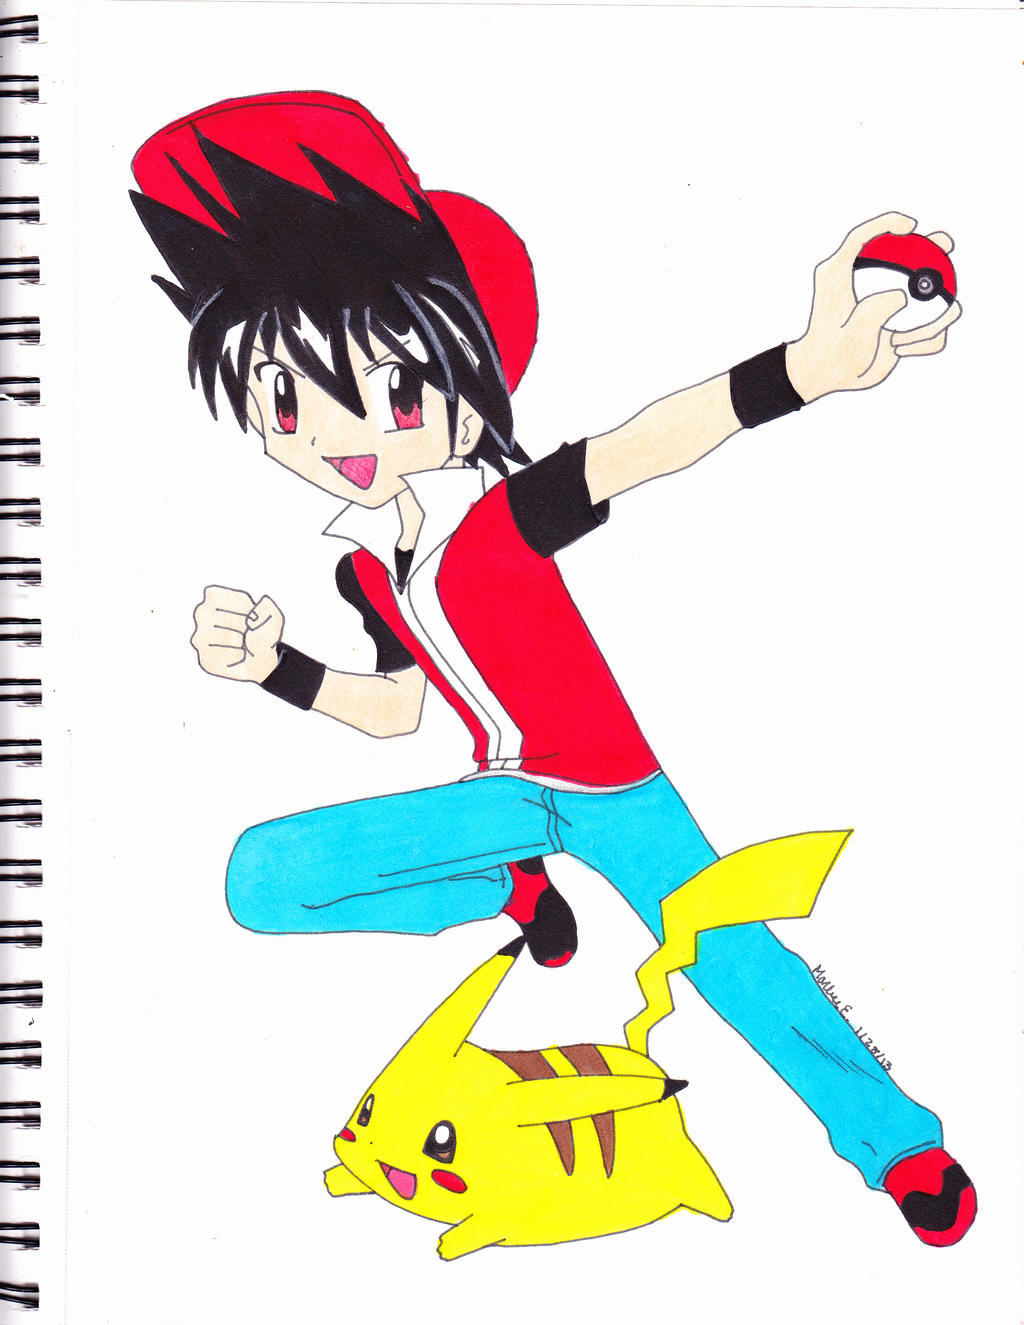 PKMN trainer red and pikachu by Yami-The-Orca on DeviantArt